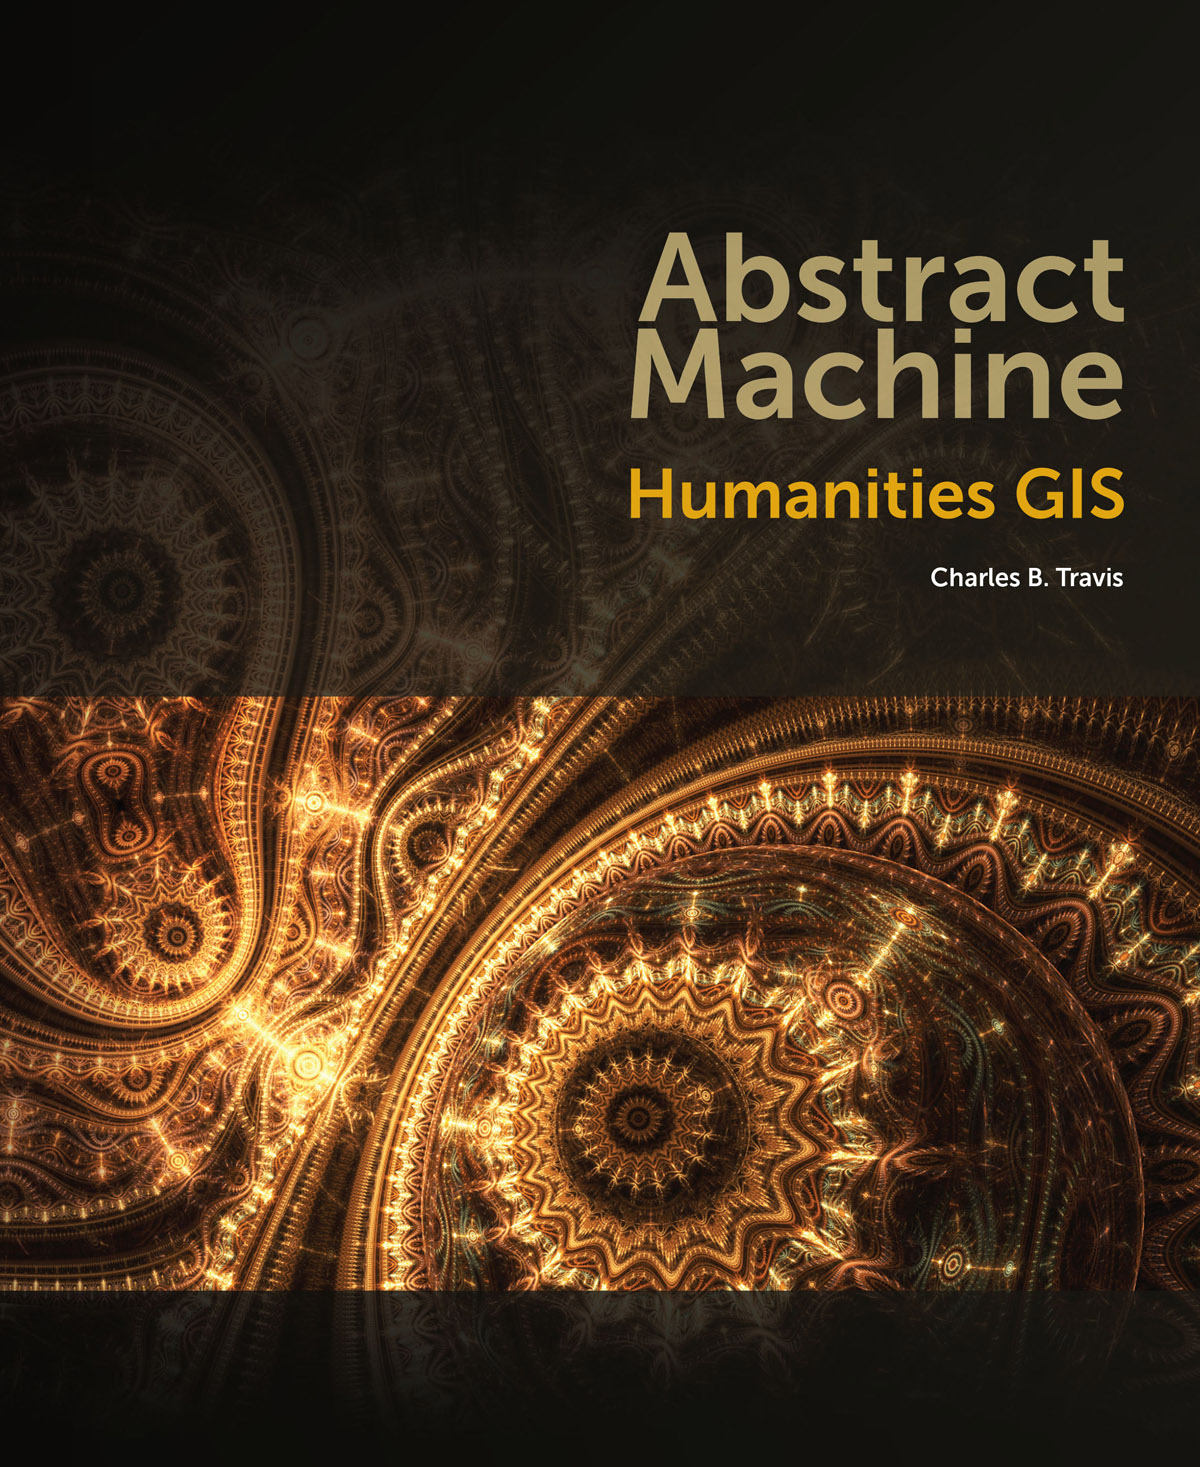 <em>Abstract Machine</em> demonstrates the importance of analyzing data in digital formats to study the humanities.